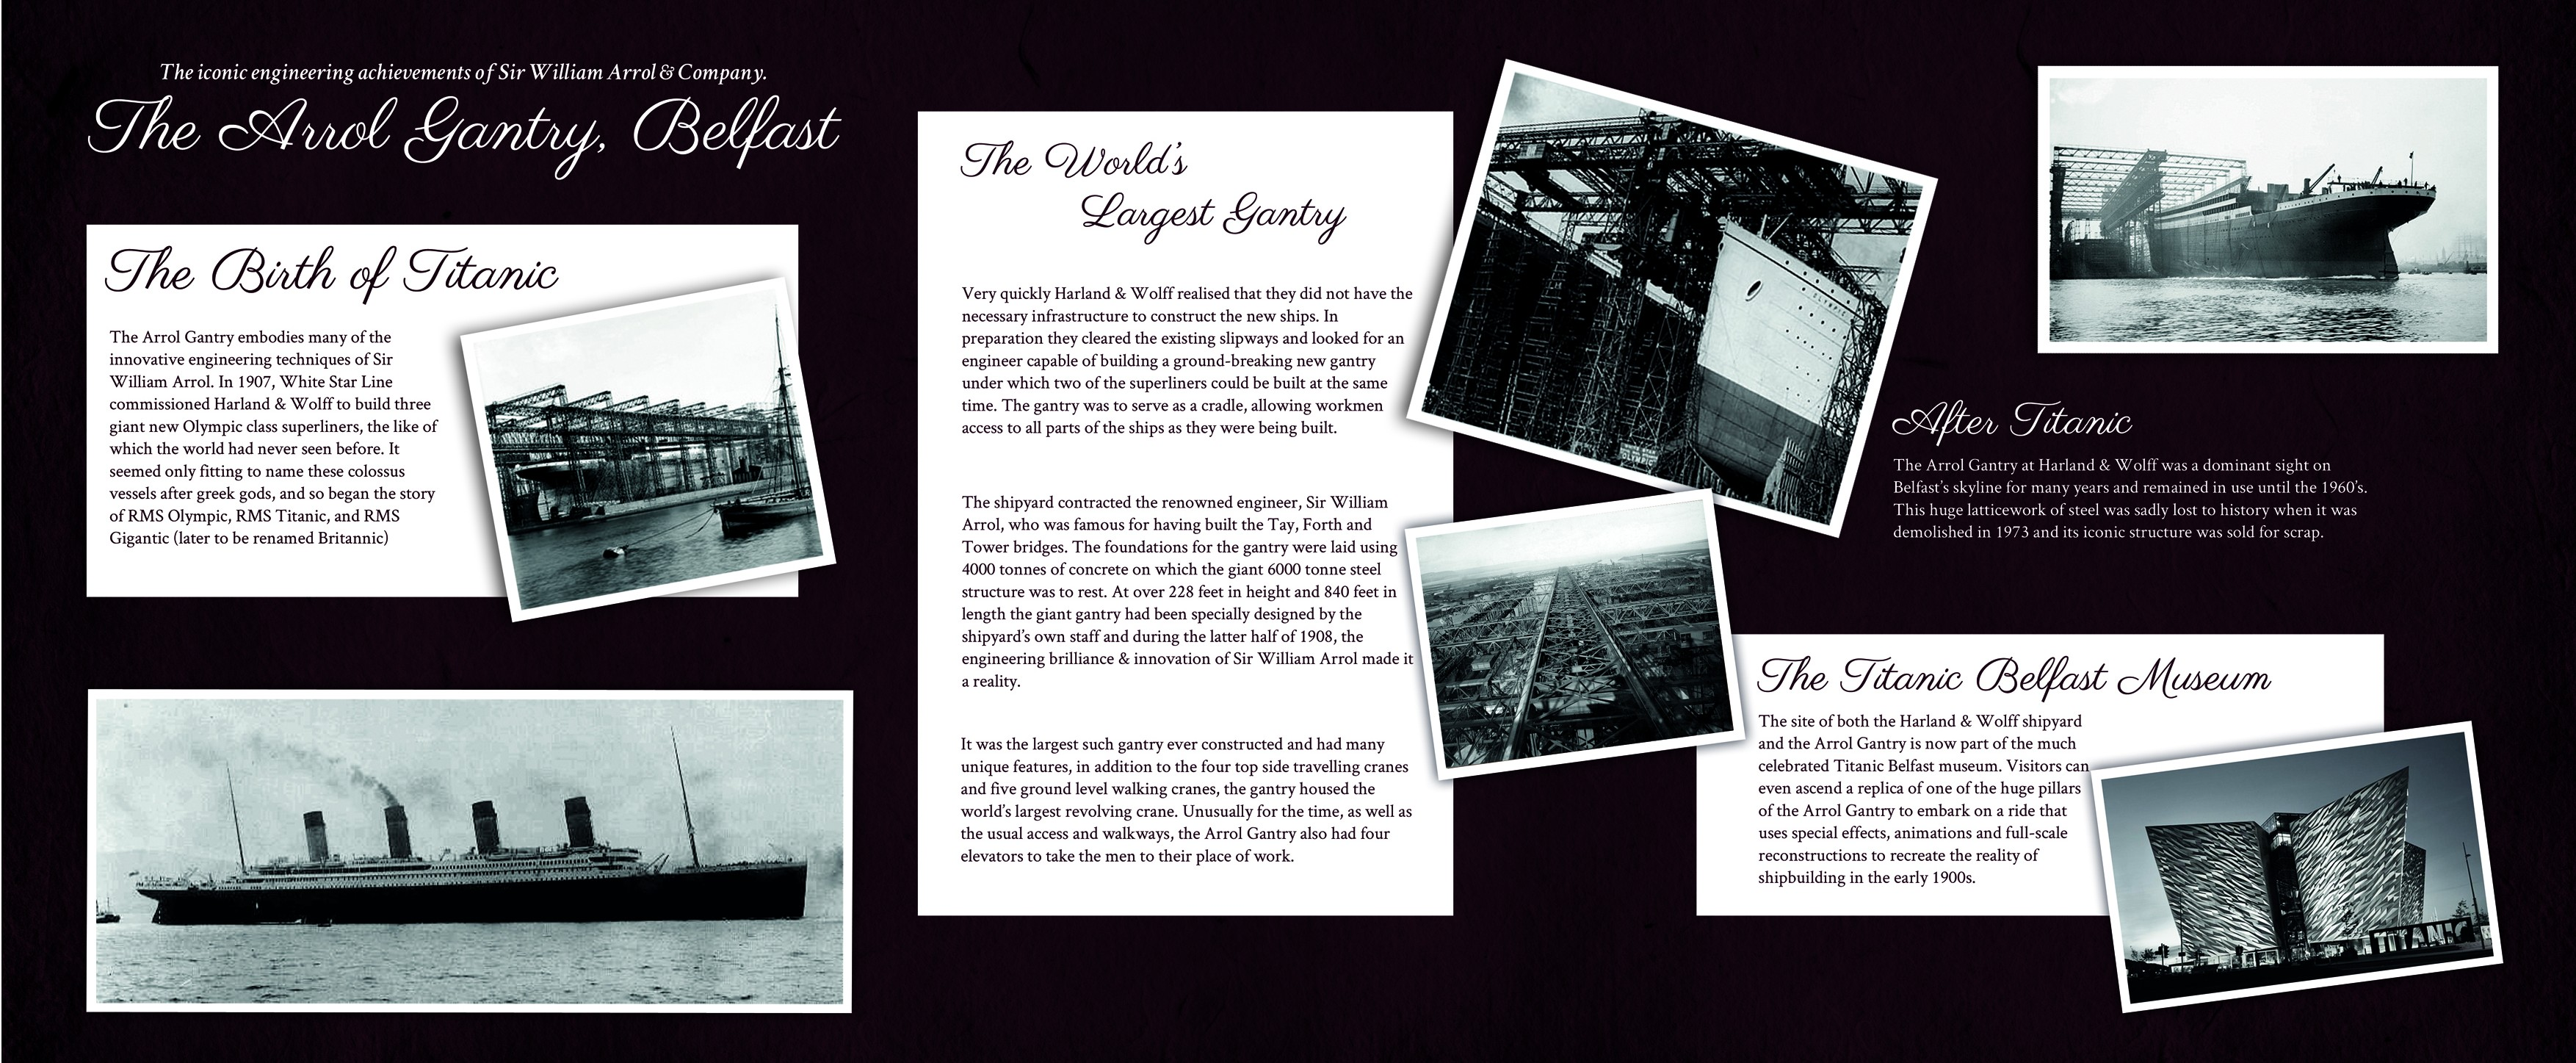 Image of an exhibition board about the Arrol Gantry in Belfast